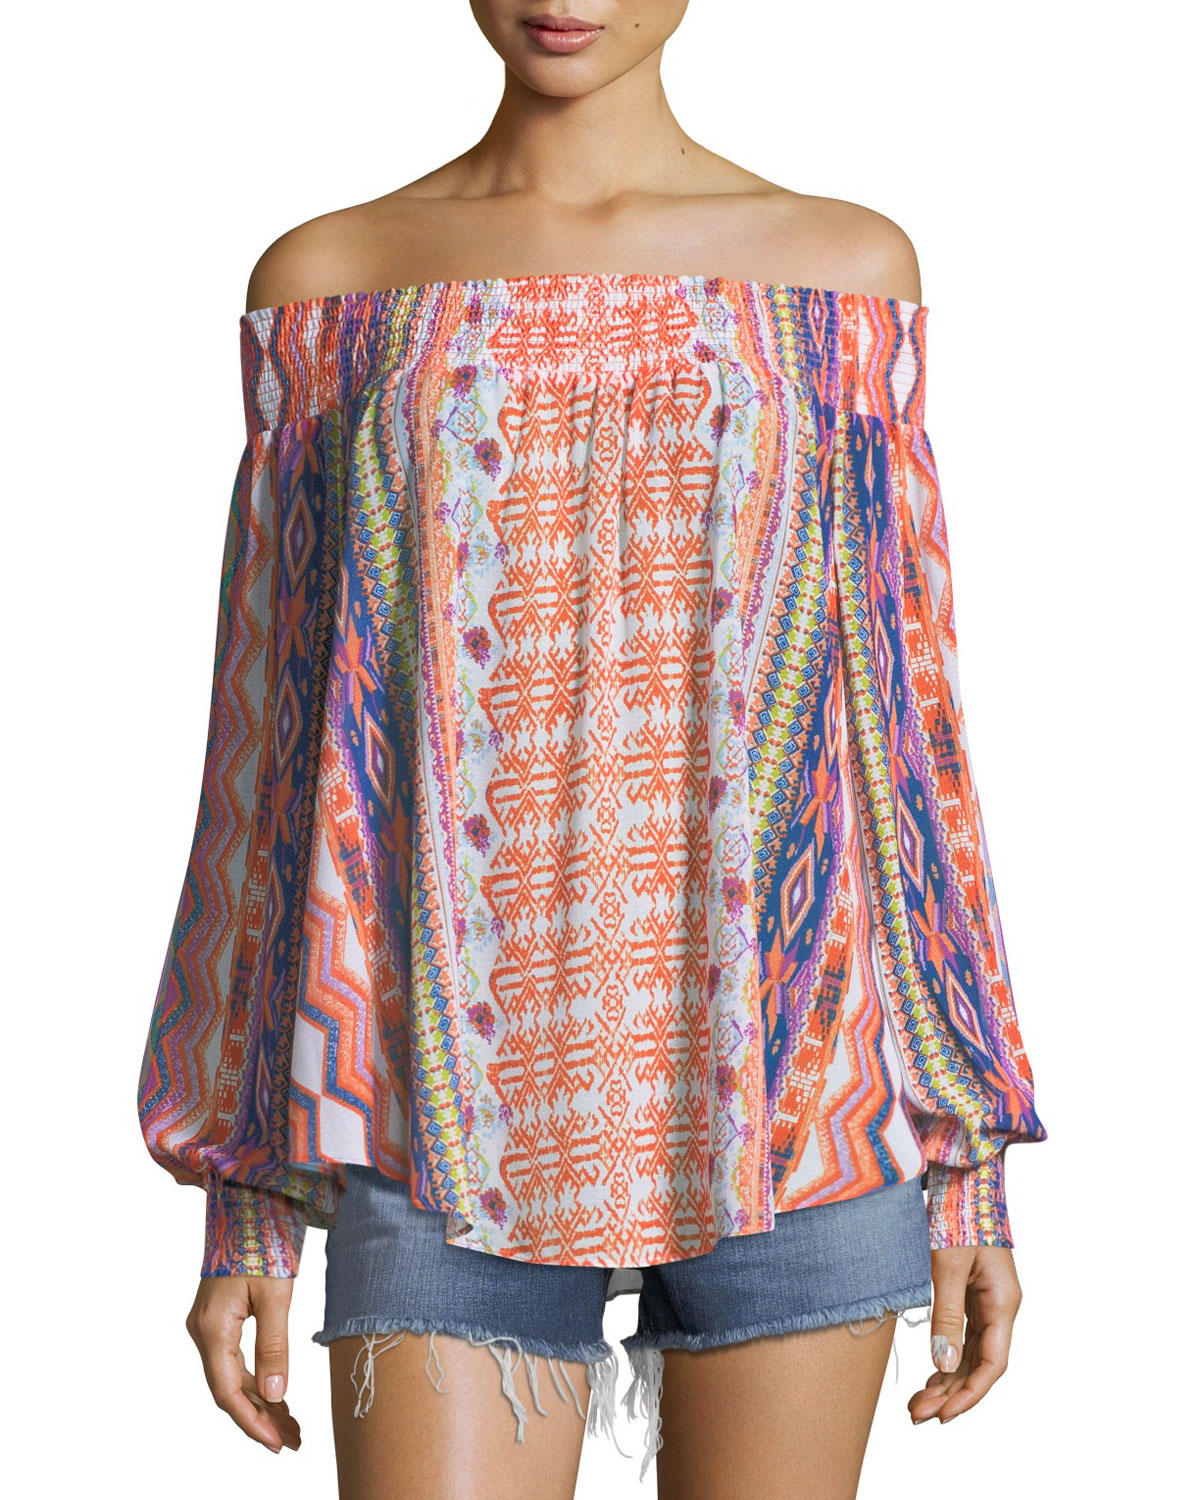 RAMY BROOK AUGUSTINE PRINTED OFF-THE-SHOULDER PRINTED TEXTURED COVERUP